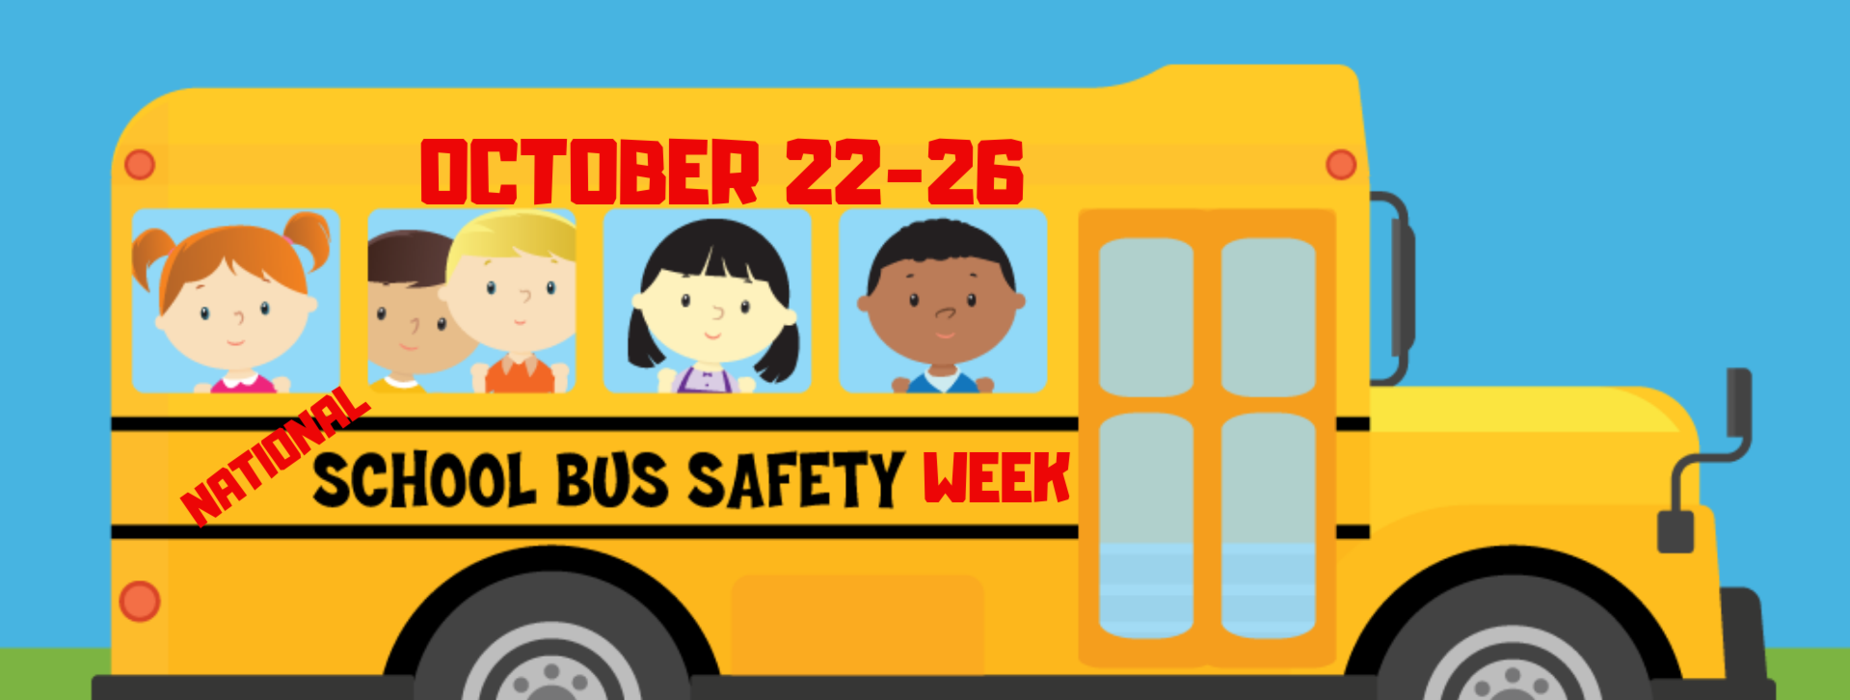 national school bus safety week October 22-26